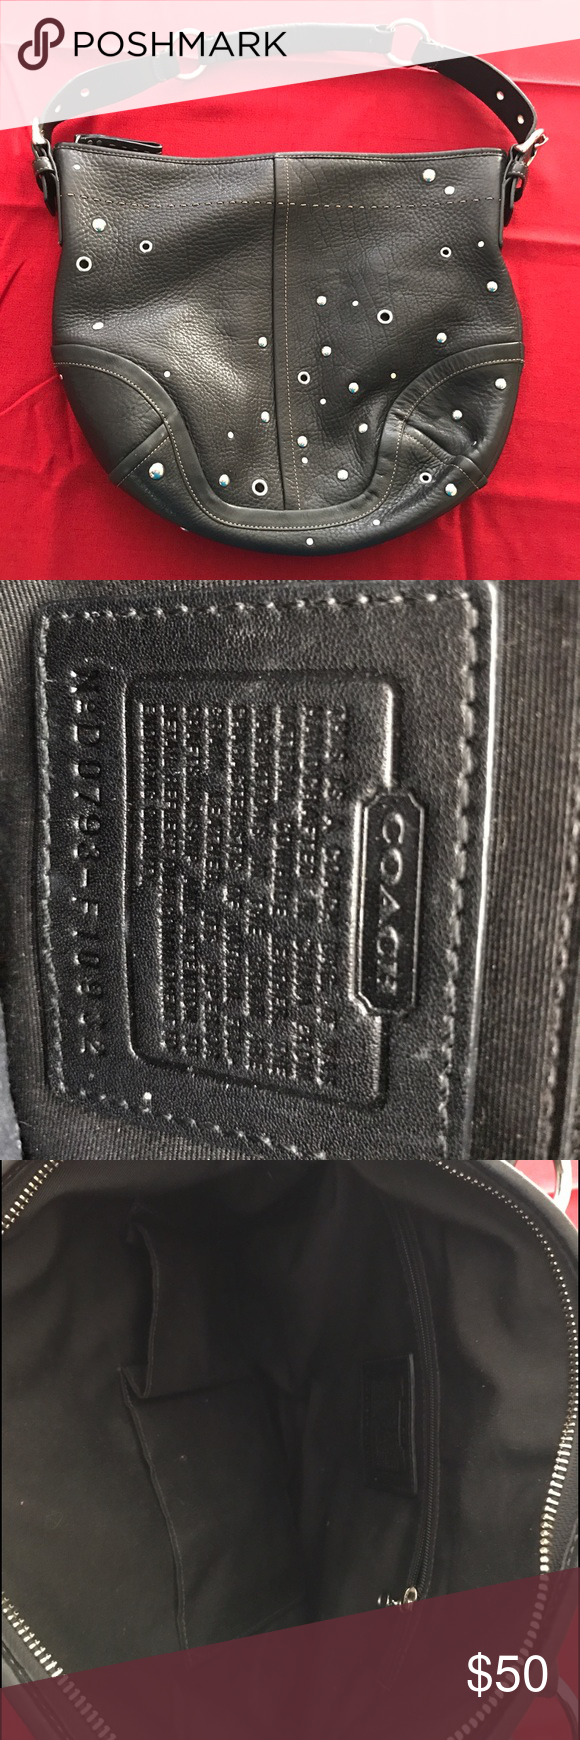 Coach bag 100% leather authentic Coach bag. Used a handful of times. Excellent condition! Coach Bags Hobos